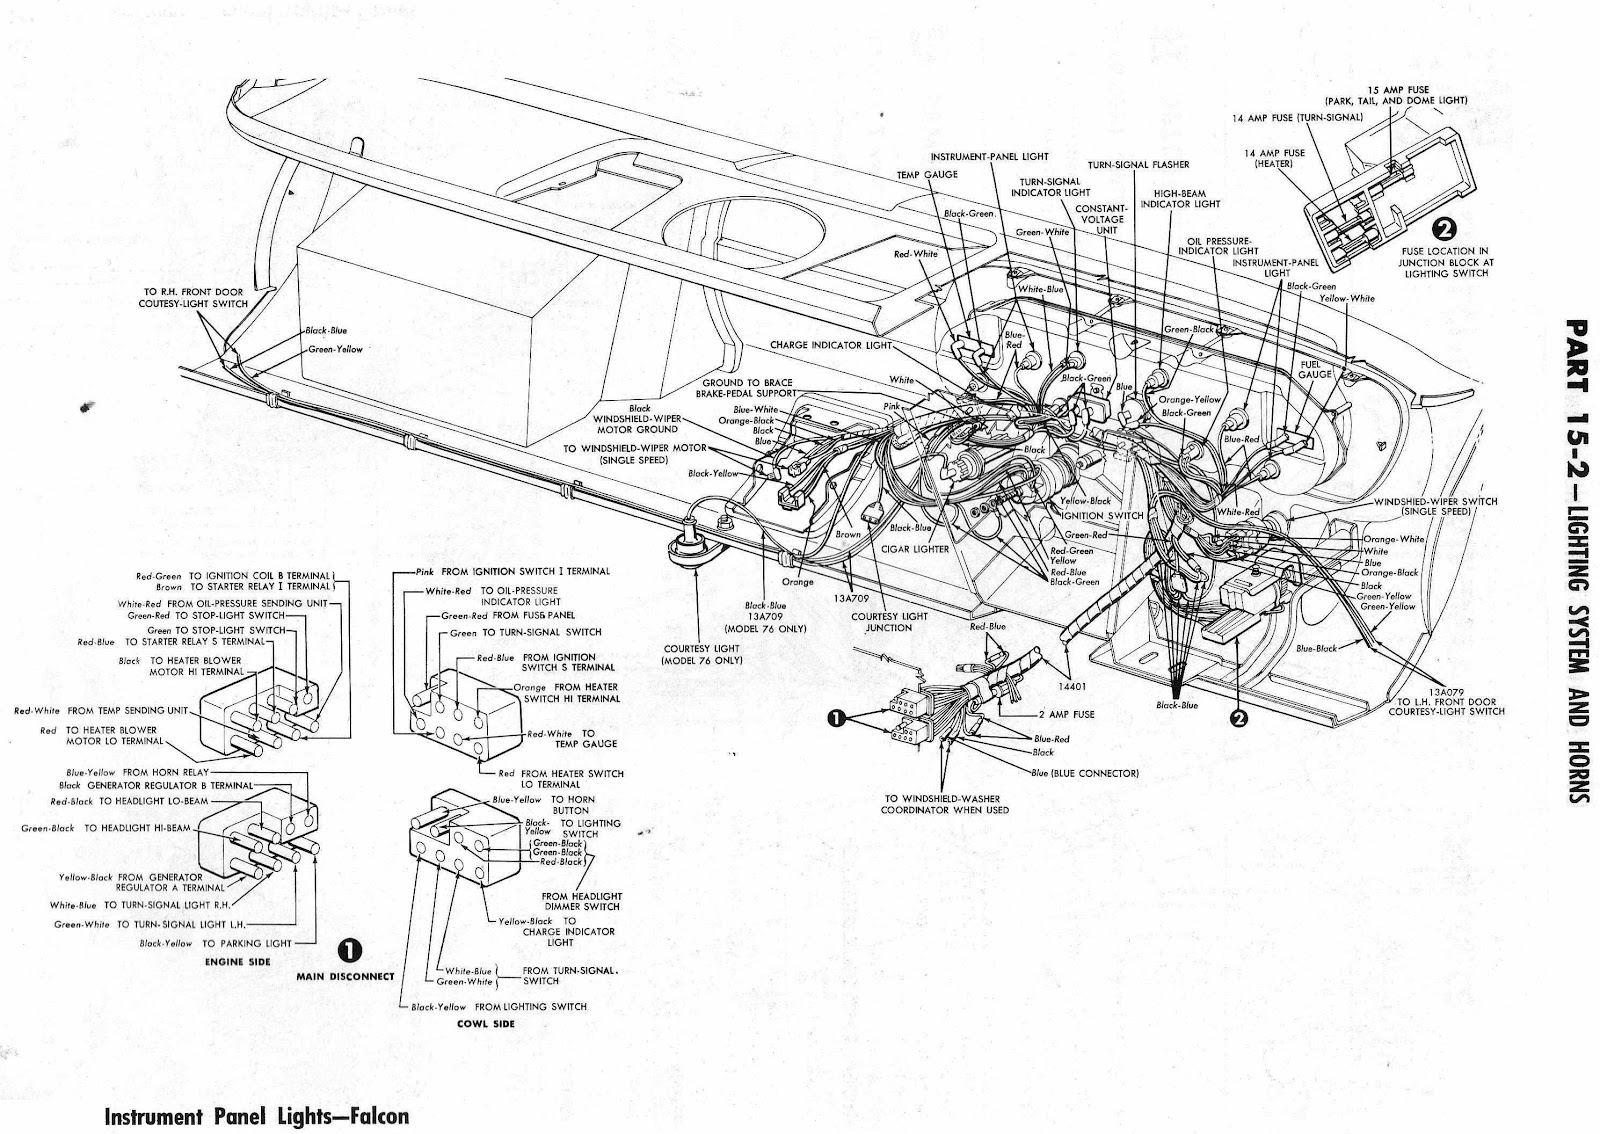 1965 Mustang Under Dash Wiring Diagram Auto Electrical Vl800 Schematic